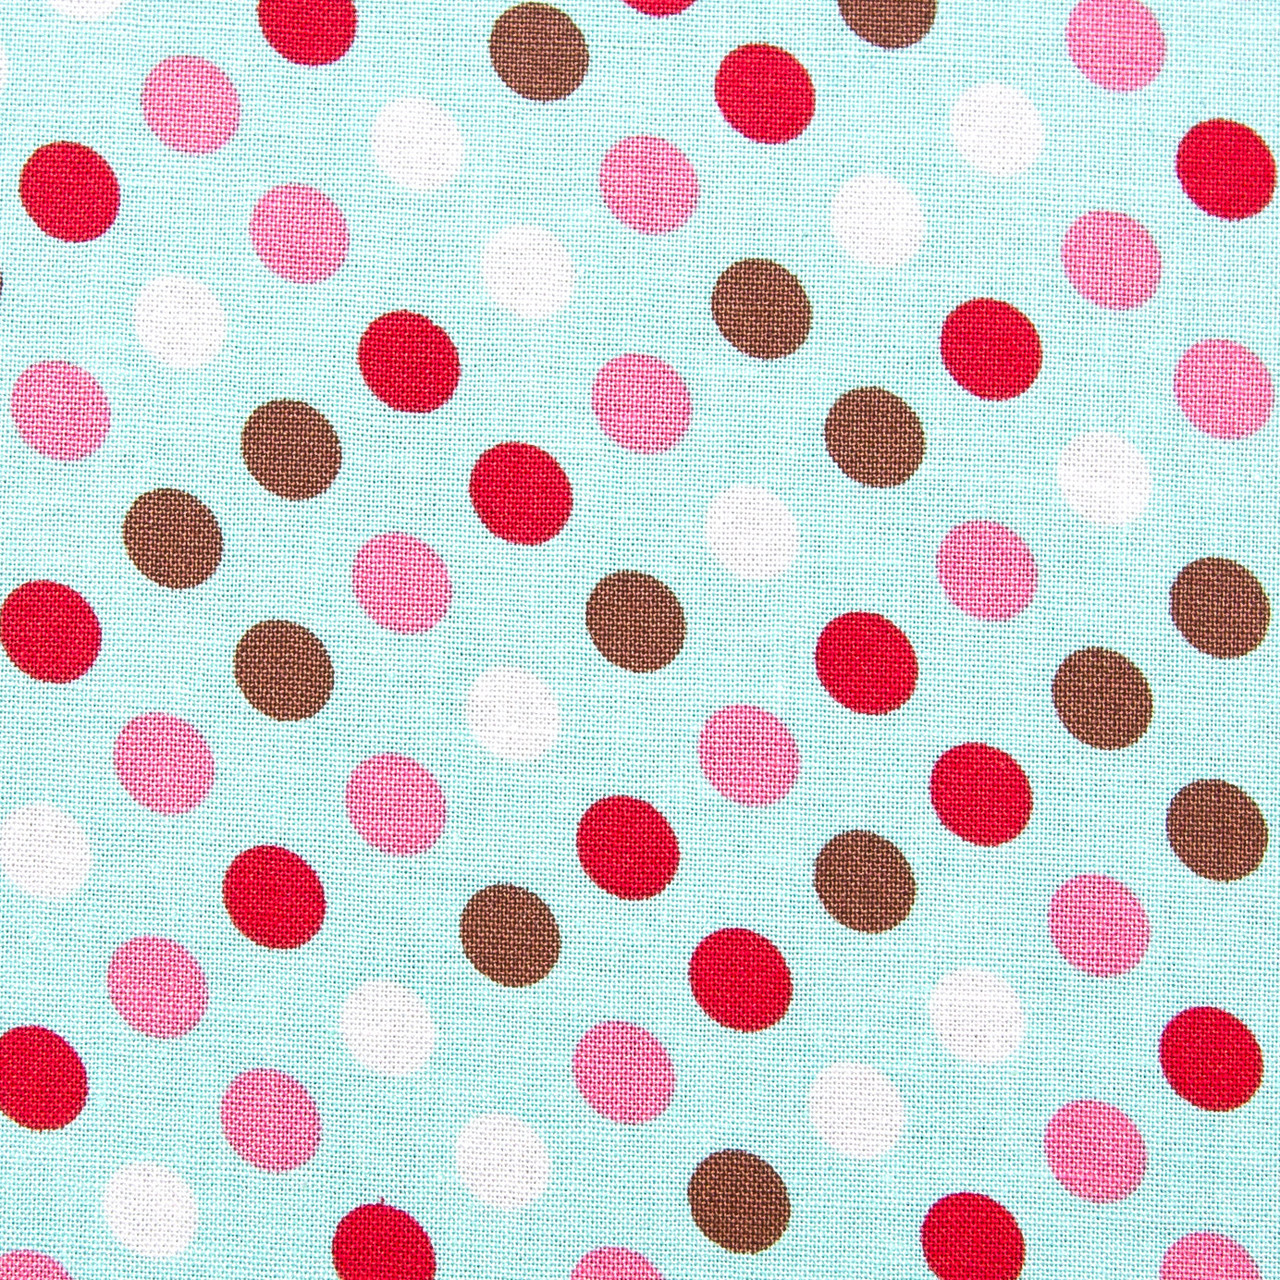 Mint Chocolate Chip print scrubs fabric for the operating room hat